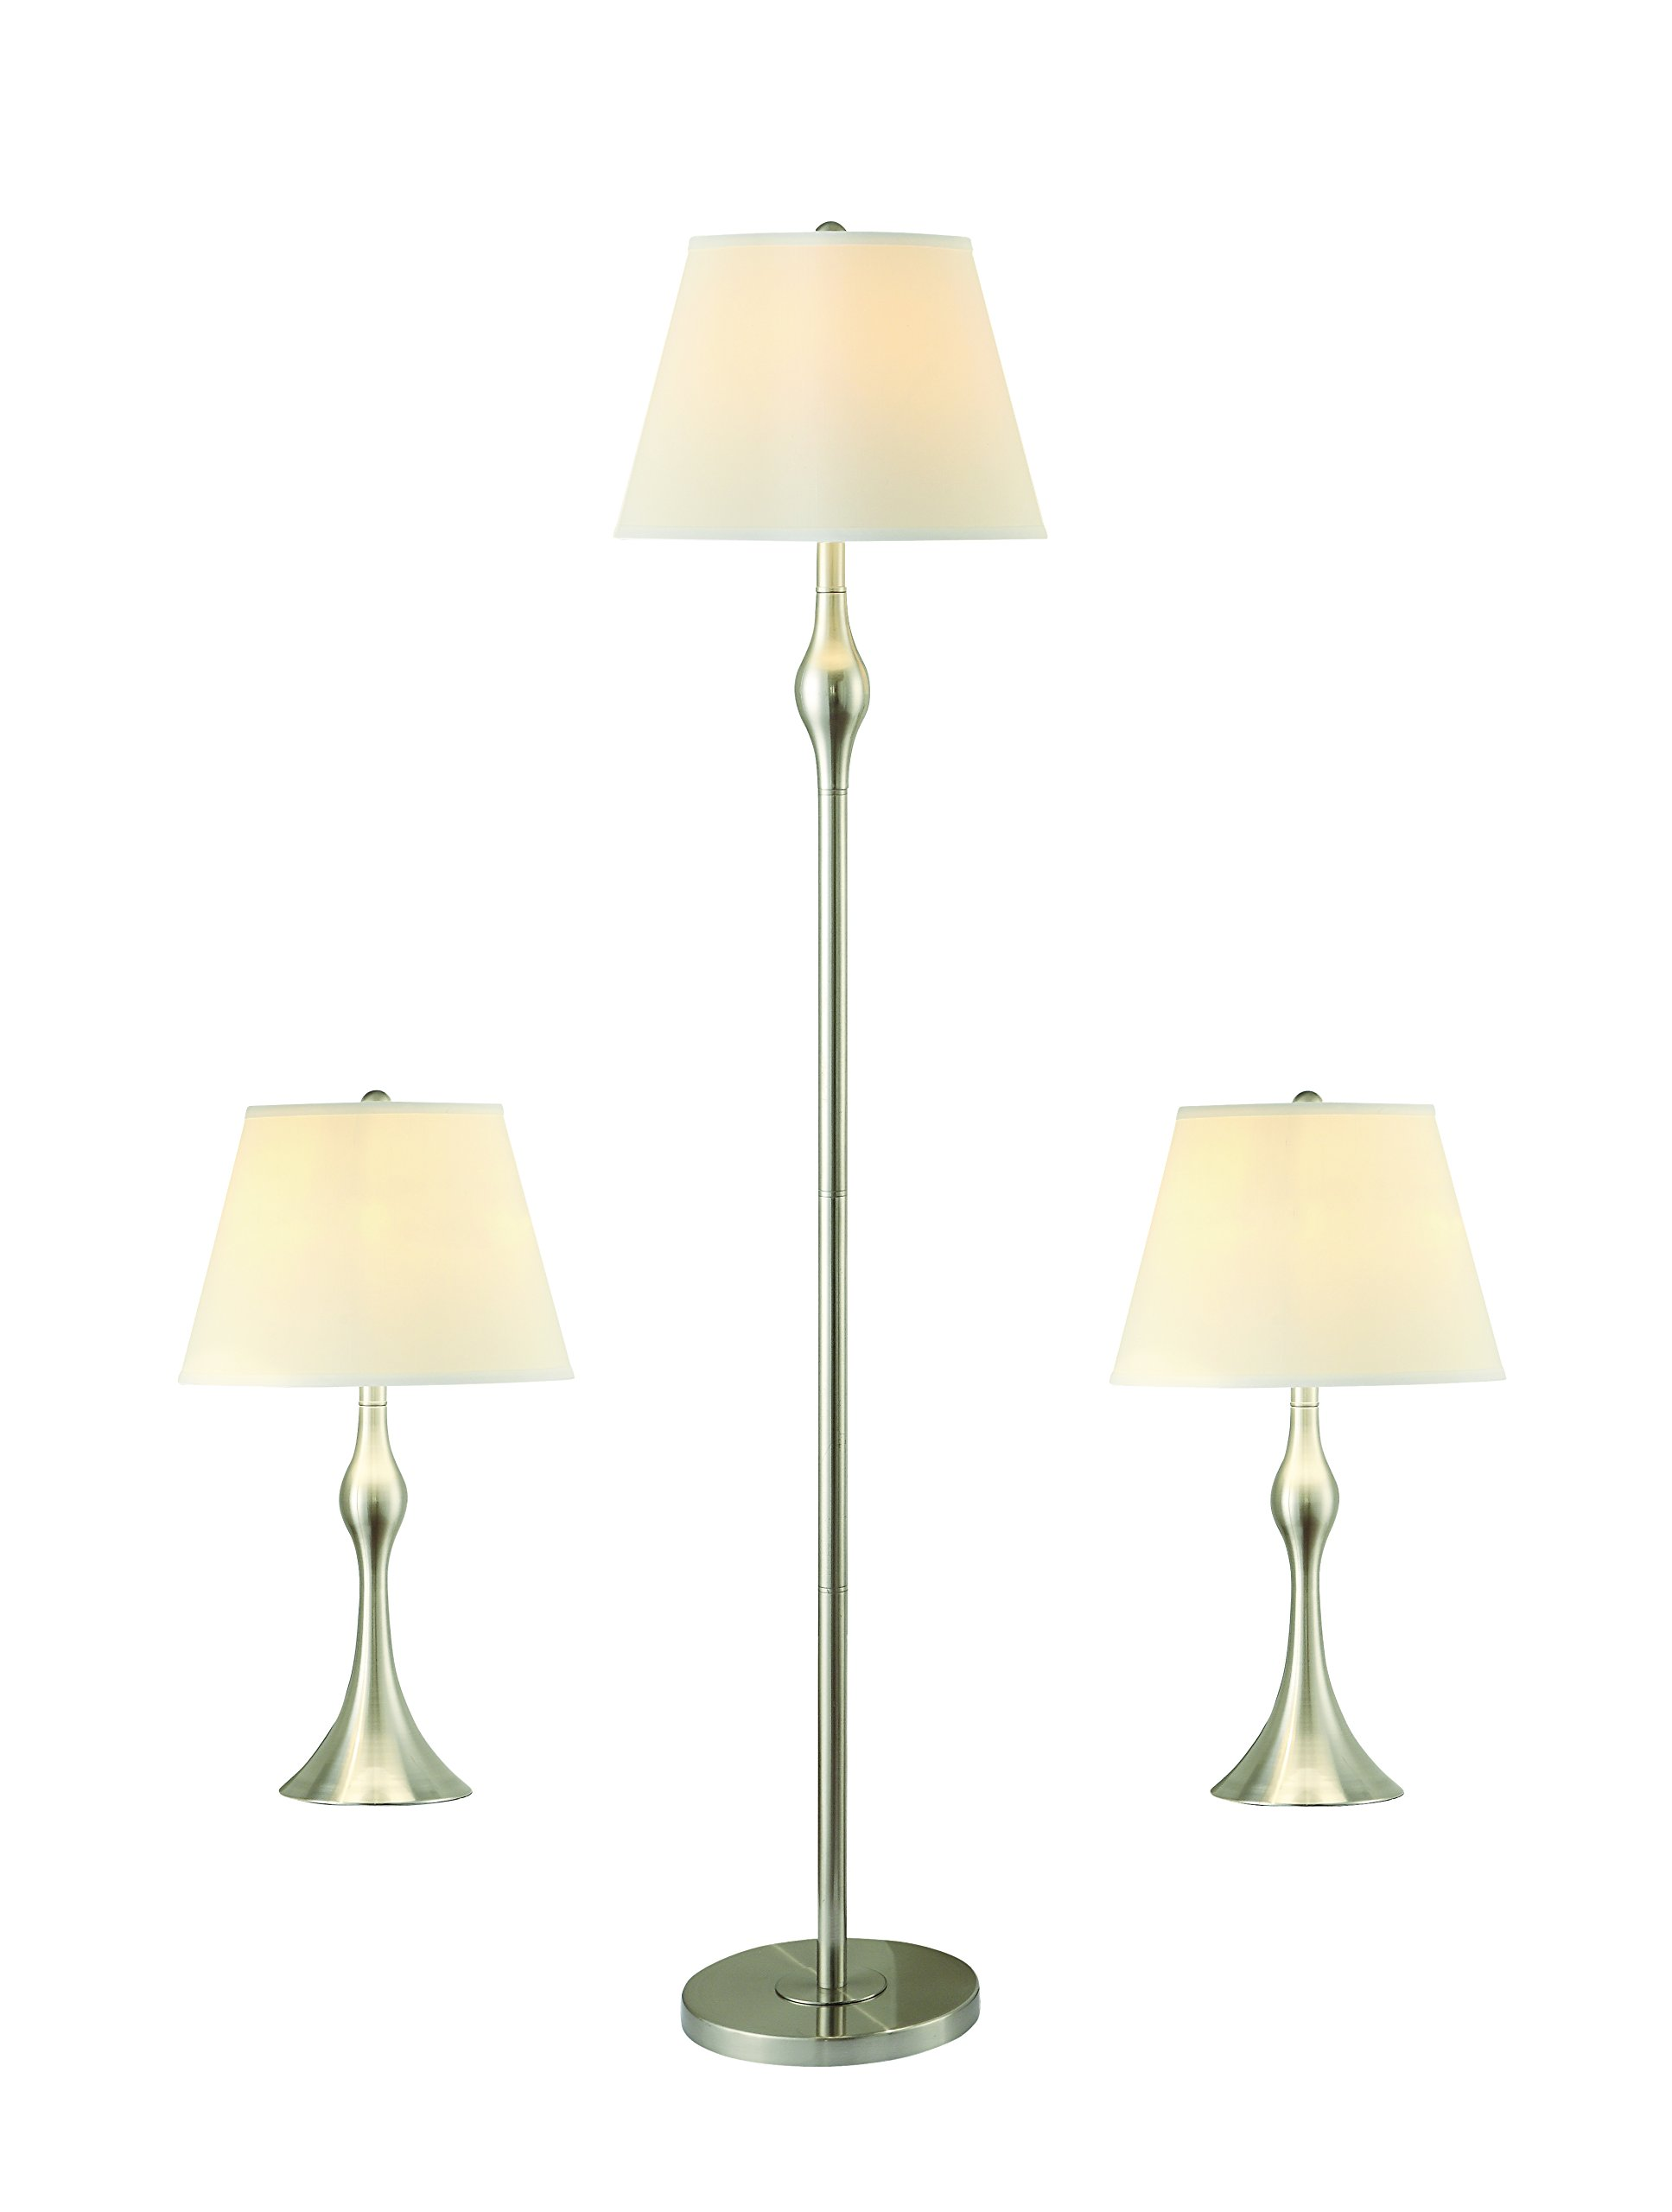 Coaster 901235 Home Furnishings 3 Piece Lamp Set, Brushed Silver